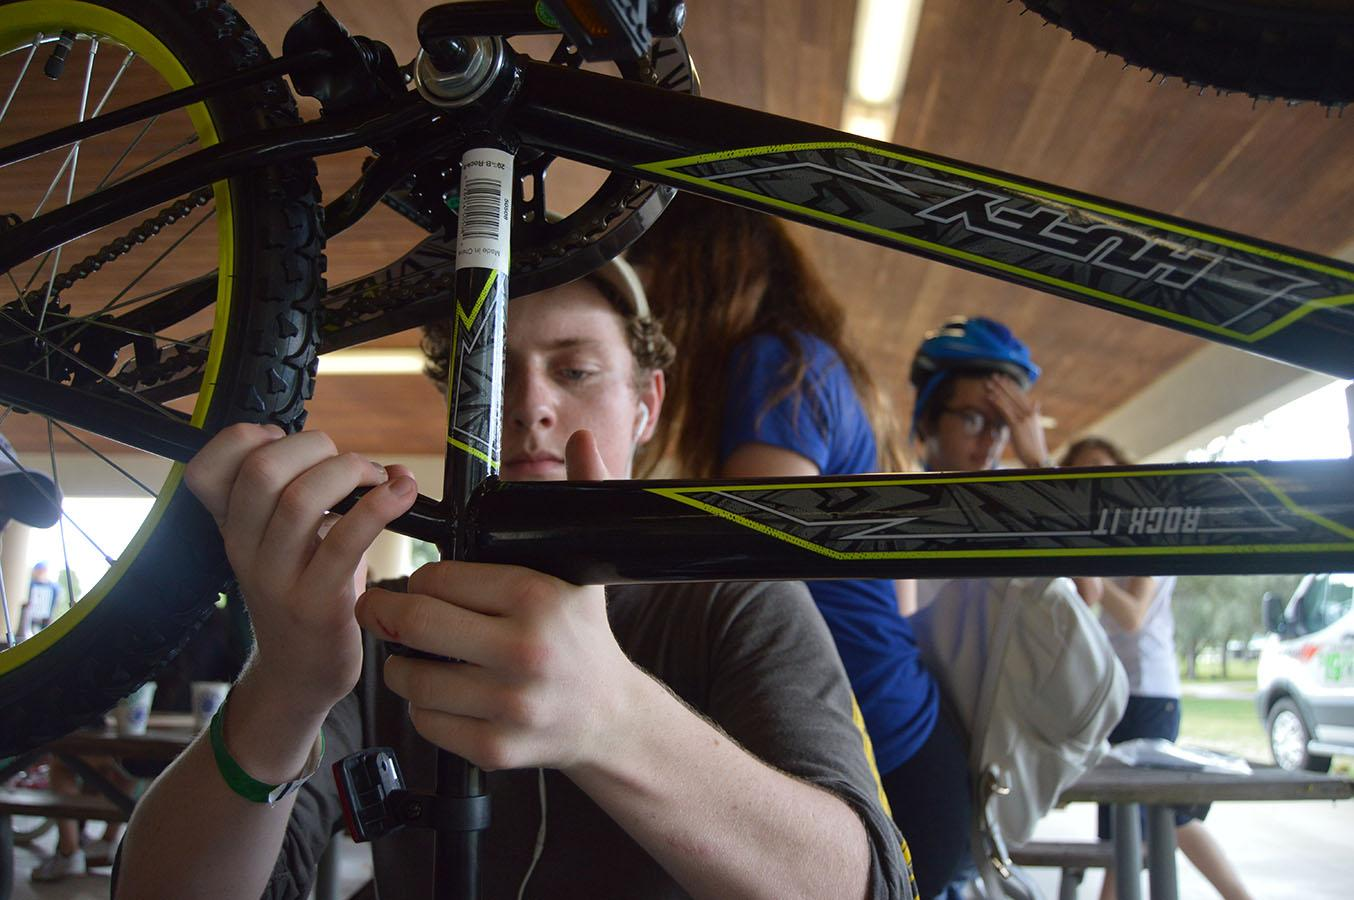 Sophomore Christopher McCormick works on his bike during the sophomore class activities on Nov. 13 at C.B. Smith Park.  The bikes were donated to Toys for Tots.  Afterwards, the class played a variety of games and engaged in team-building activities.  Photo by Pedro Schmeil.